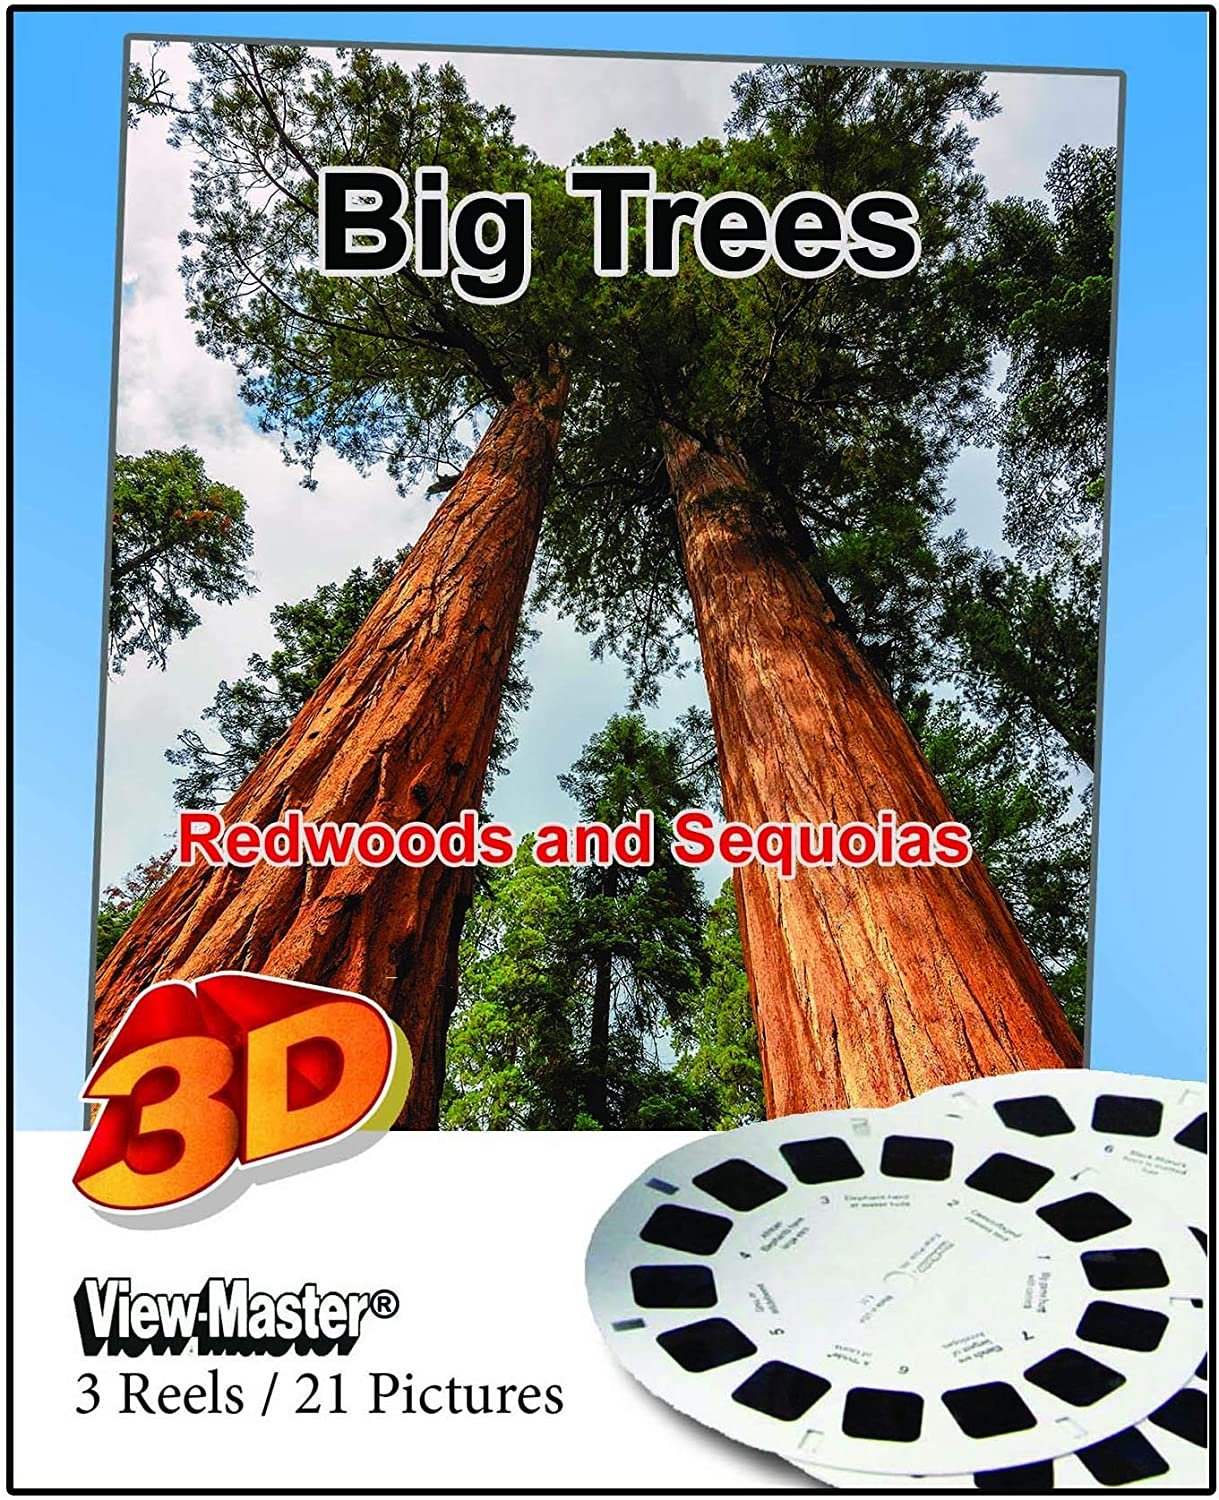 21 3D Images Sequoia and Kings Canyon Redwood Highway Classic ViewMaster 3Reel Set Big Trees